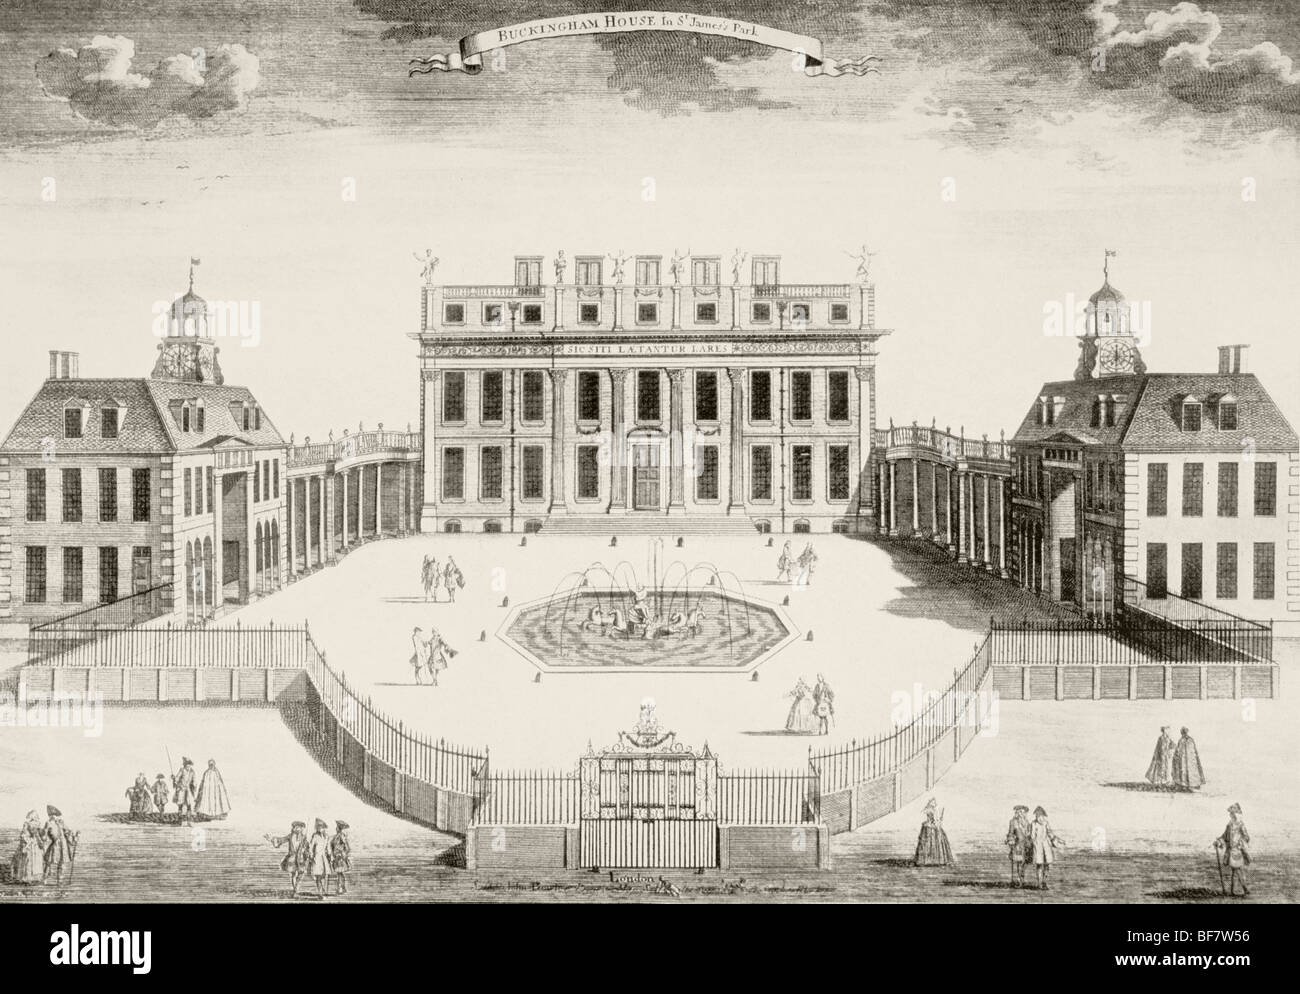 Buckingham House, after an engraving made in 1714. The house was the core  of today's palace.